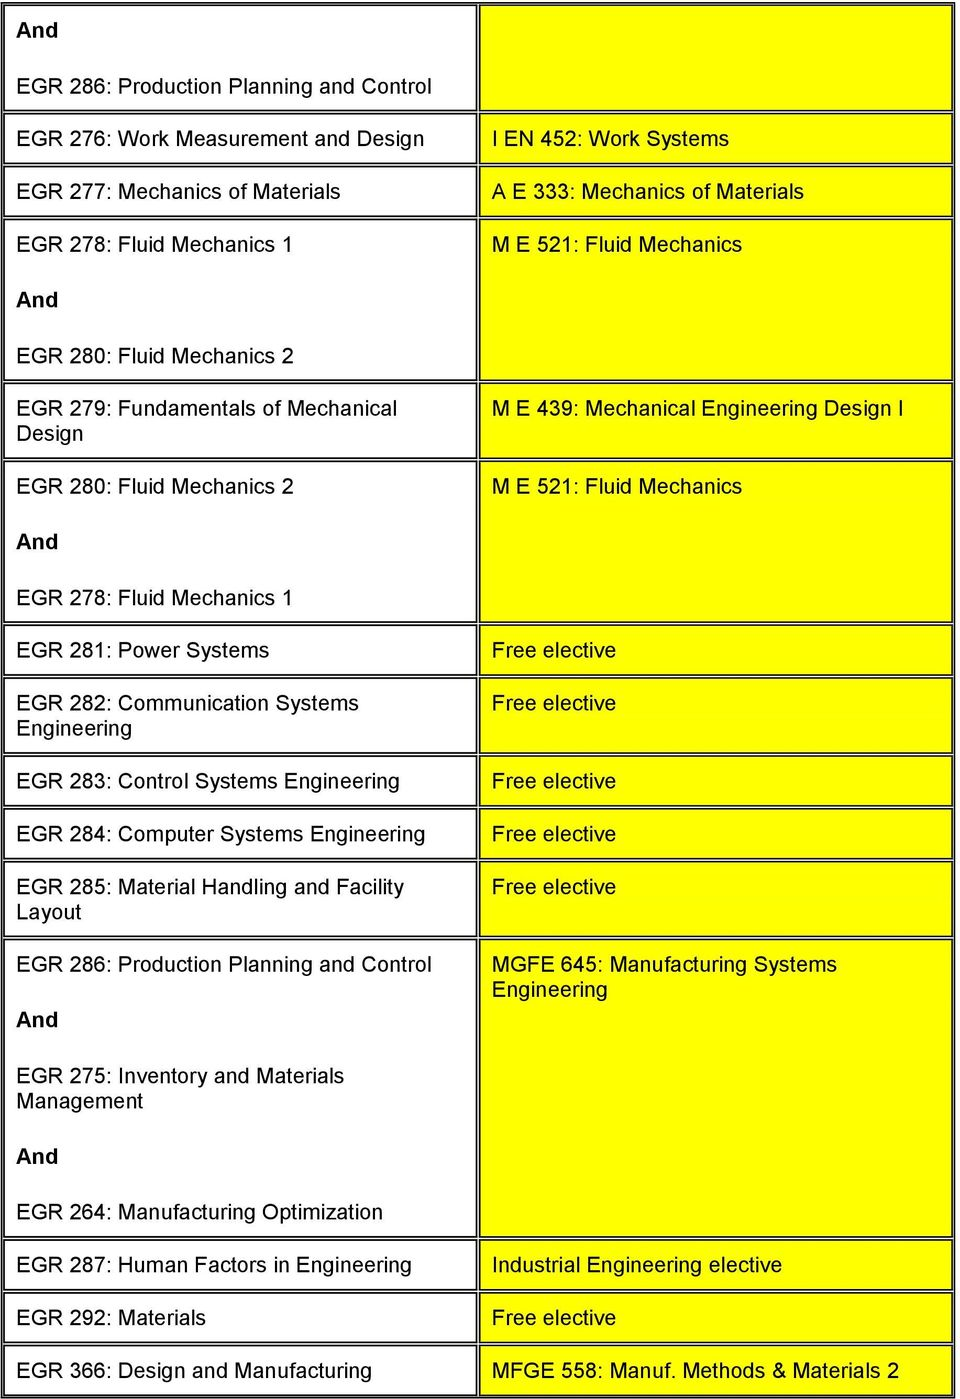 EGR 281: Power Systems EGR 282: Communication Systems EGR 283: Control Systems EGR 284: Computer Systems EGR 285: Material Handling and Facility Layout EGR 286: Production Planning and Control MGFE